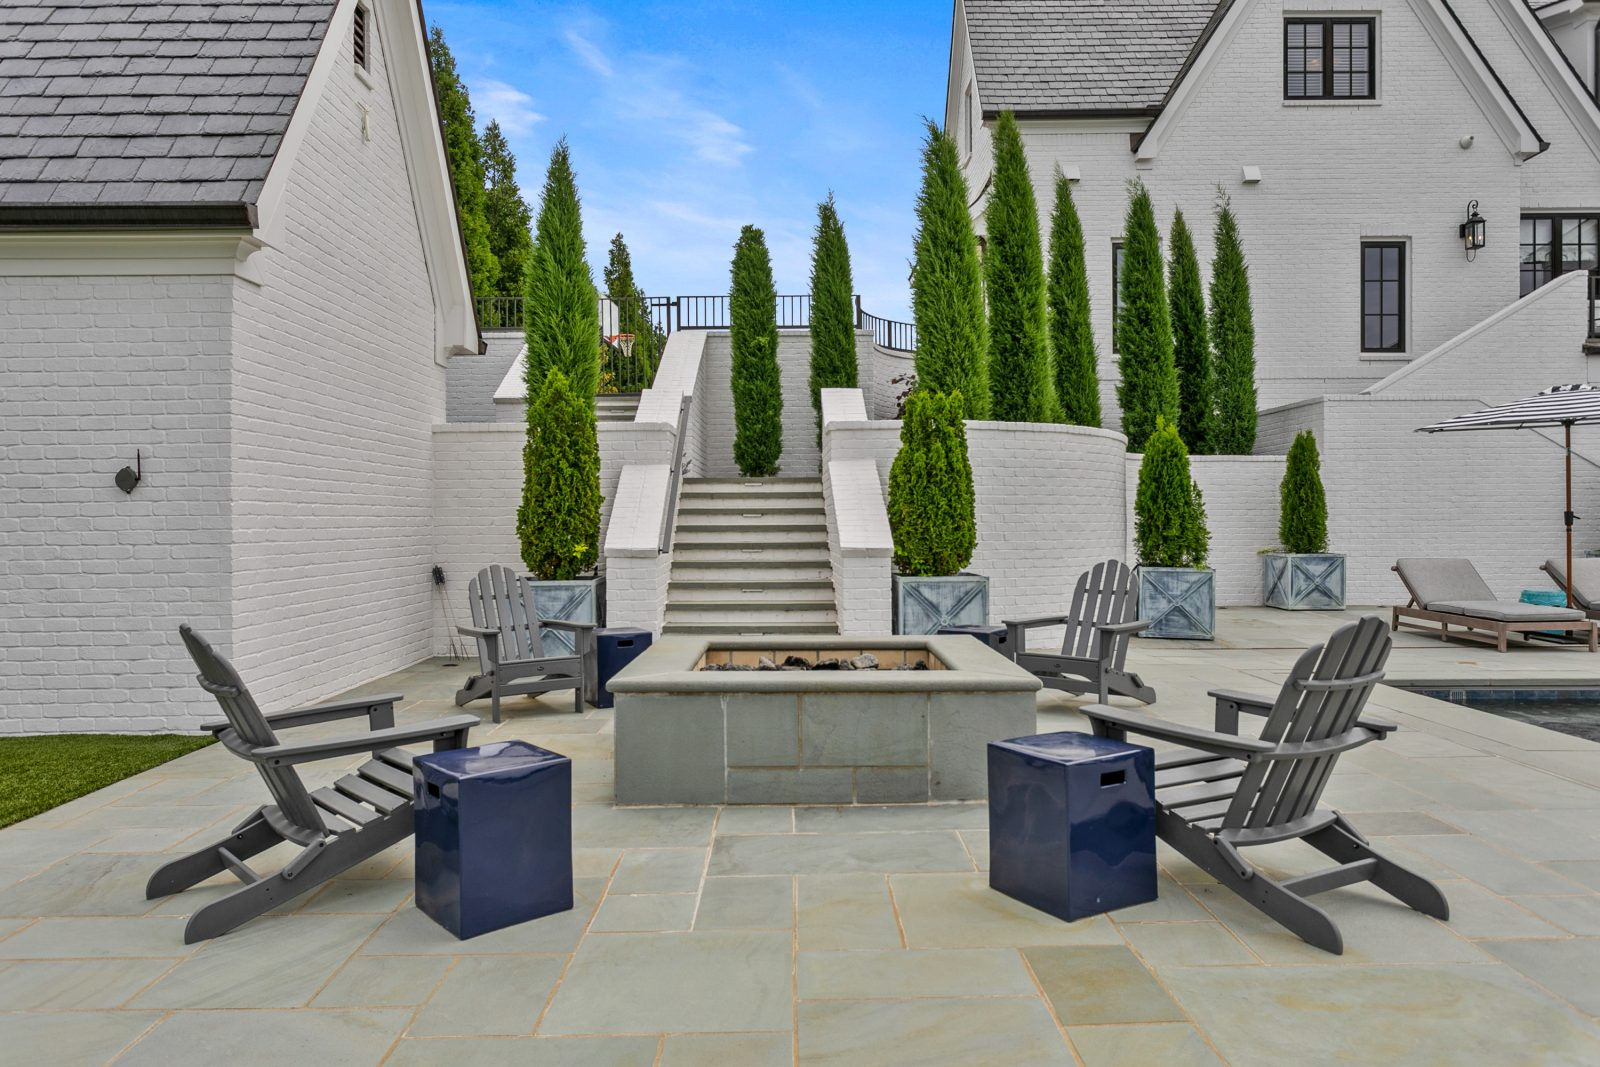 Backyard fire pit in Franklin TN, with terraced stairs and tall evergreen trees